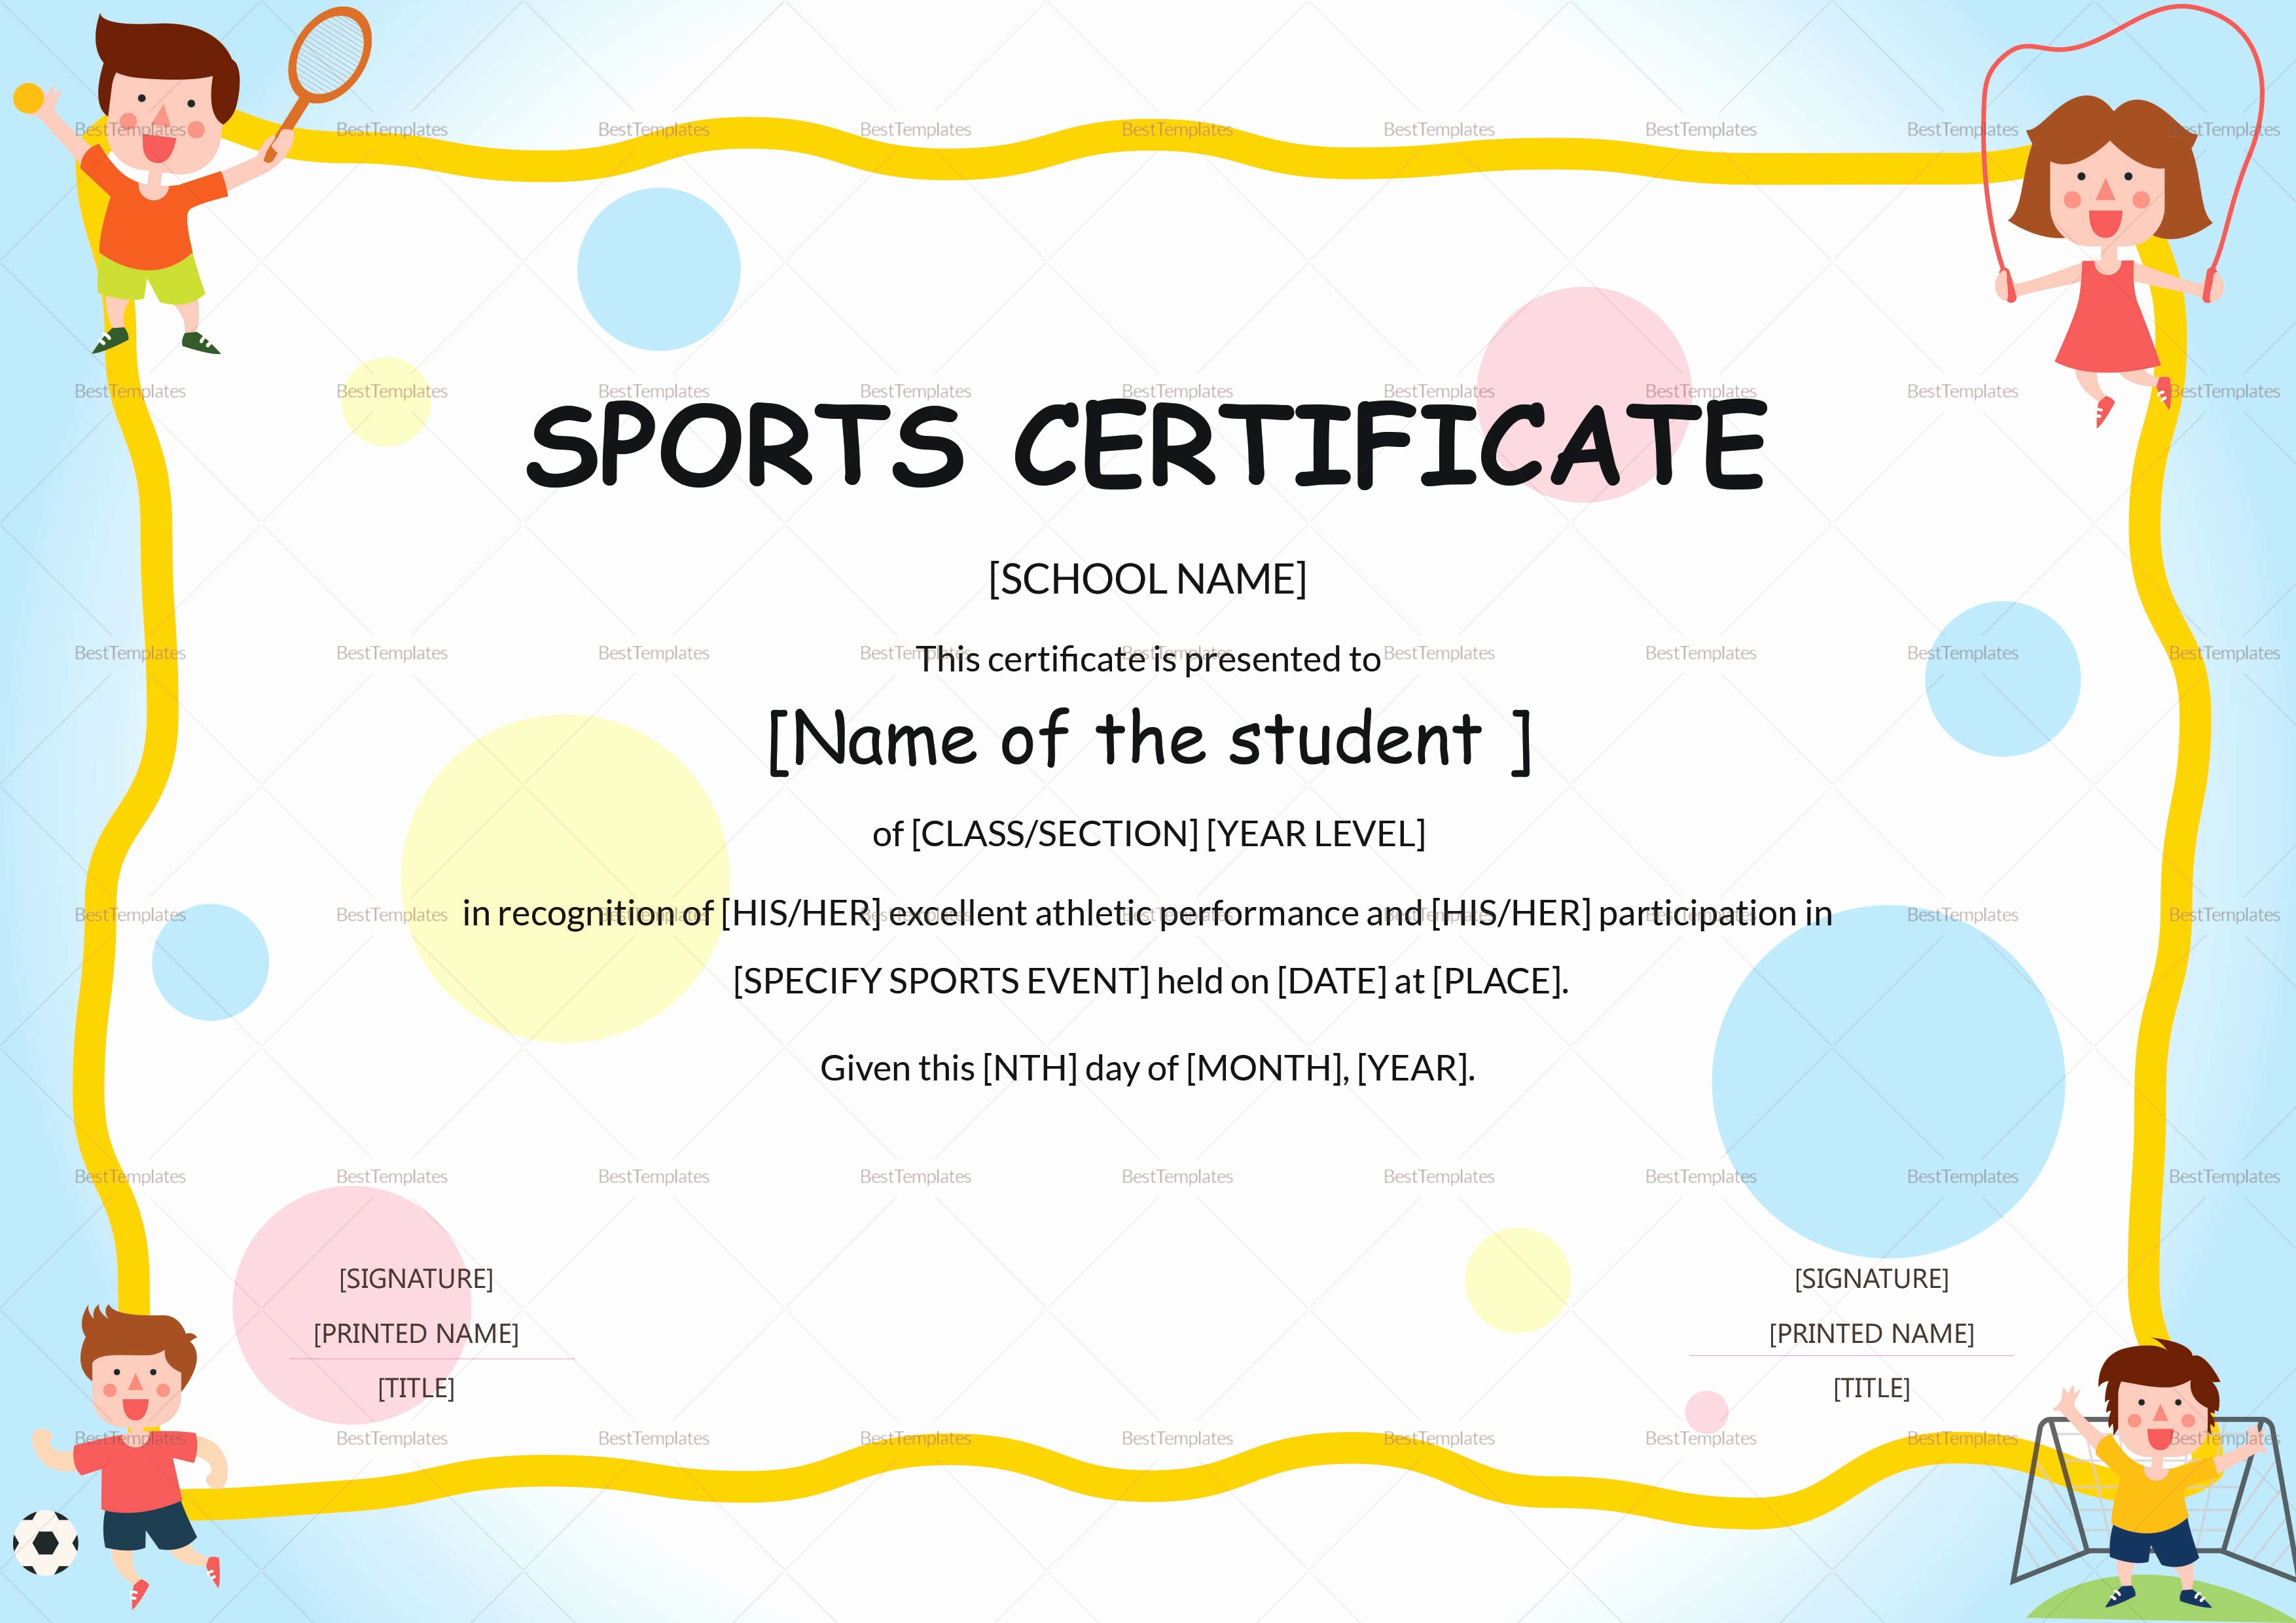 Certificate Of Participation for Kids Lovely Kids Sports Participation Certificate Design Template In